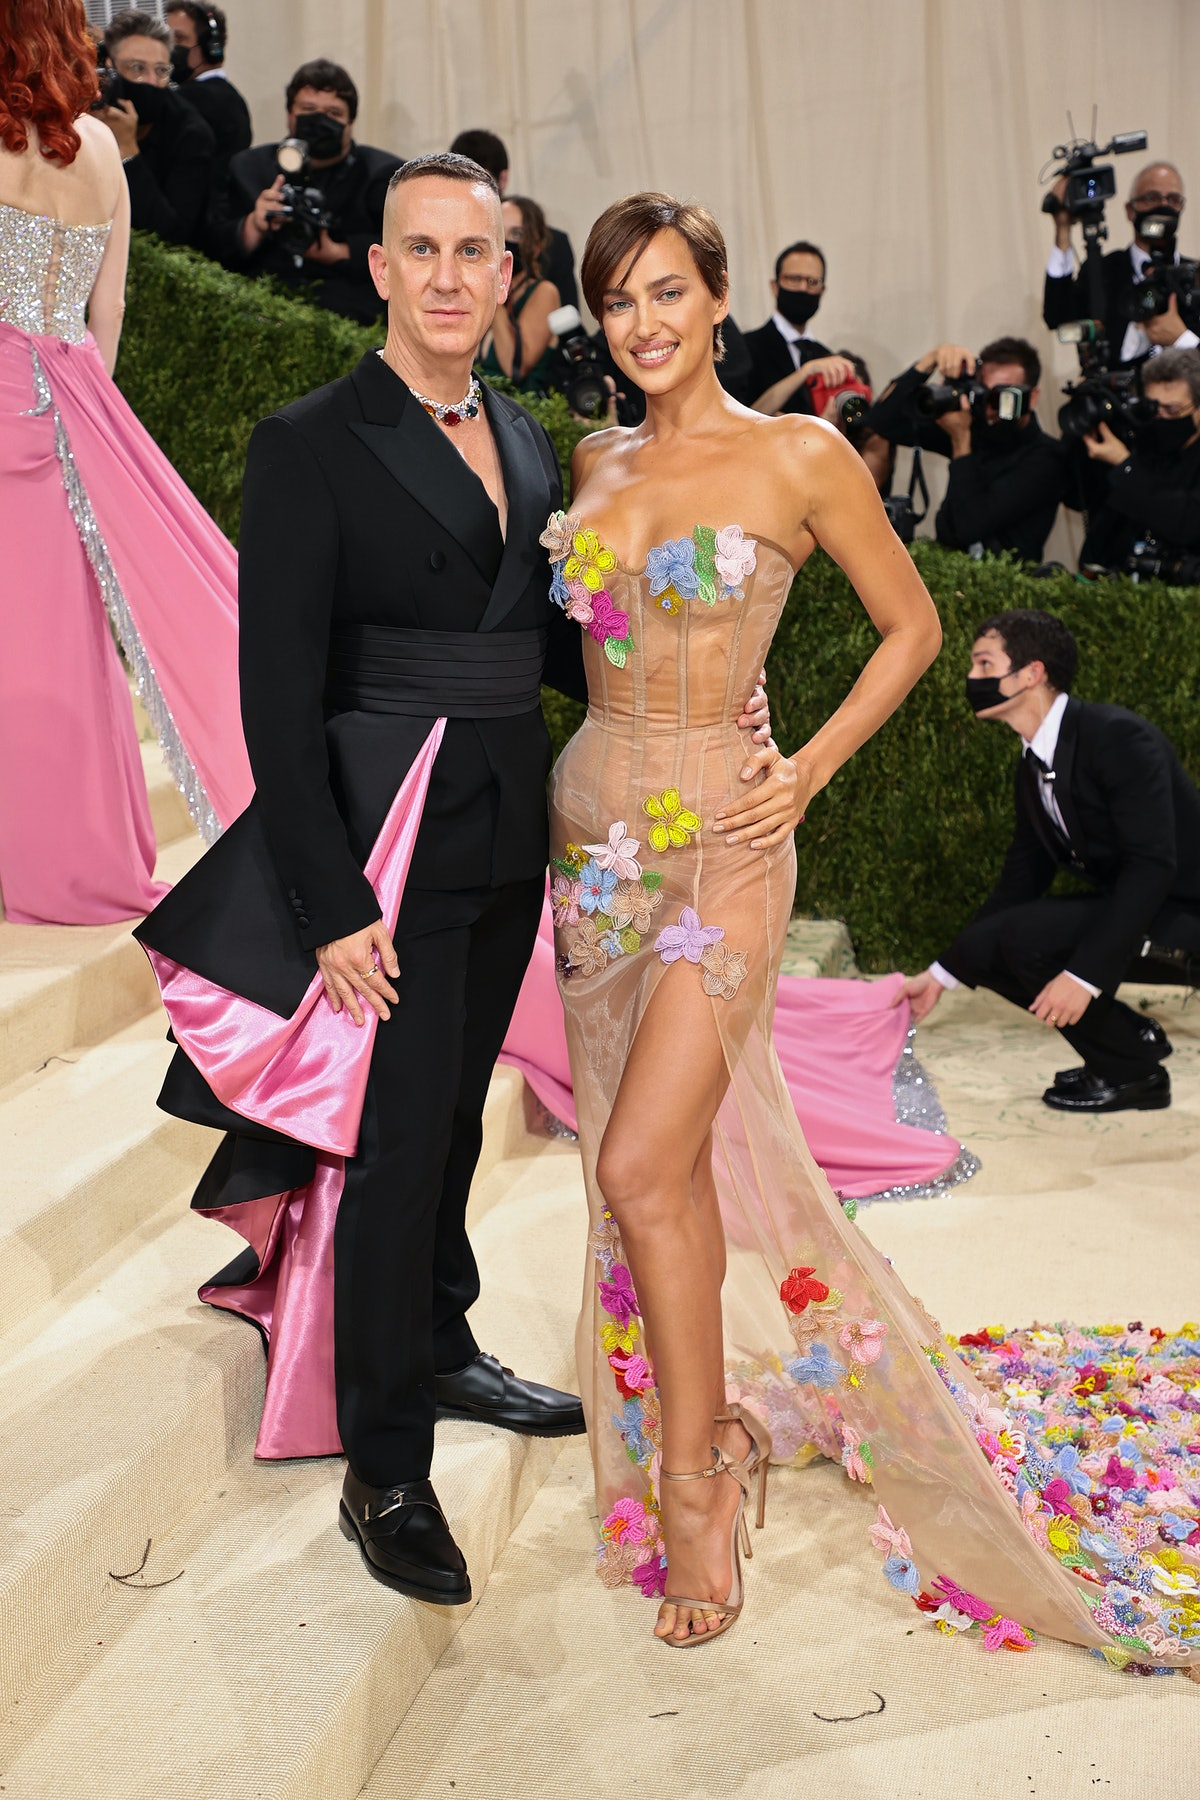 Jeremy Scott and Irina Shayk attend The 2021 Met Gala Celebrating In America: A Lexicon Of Fashion a...